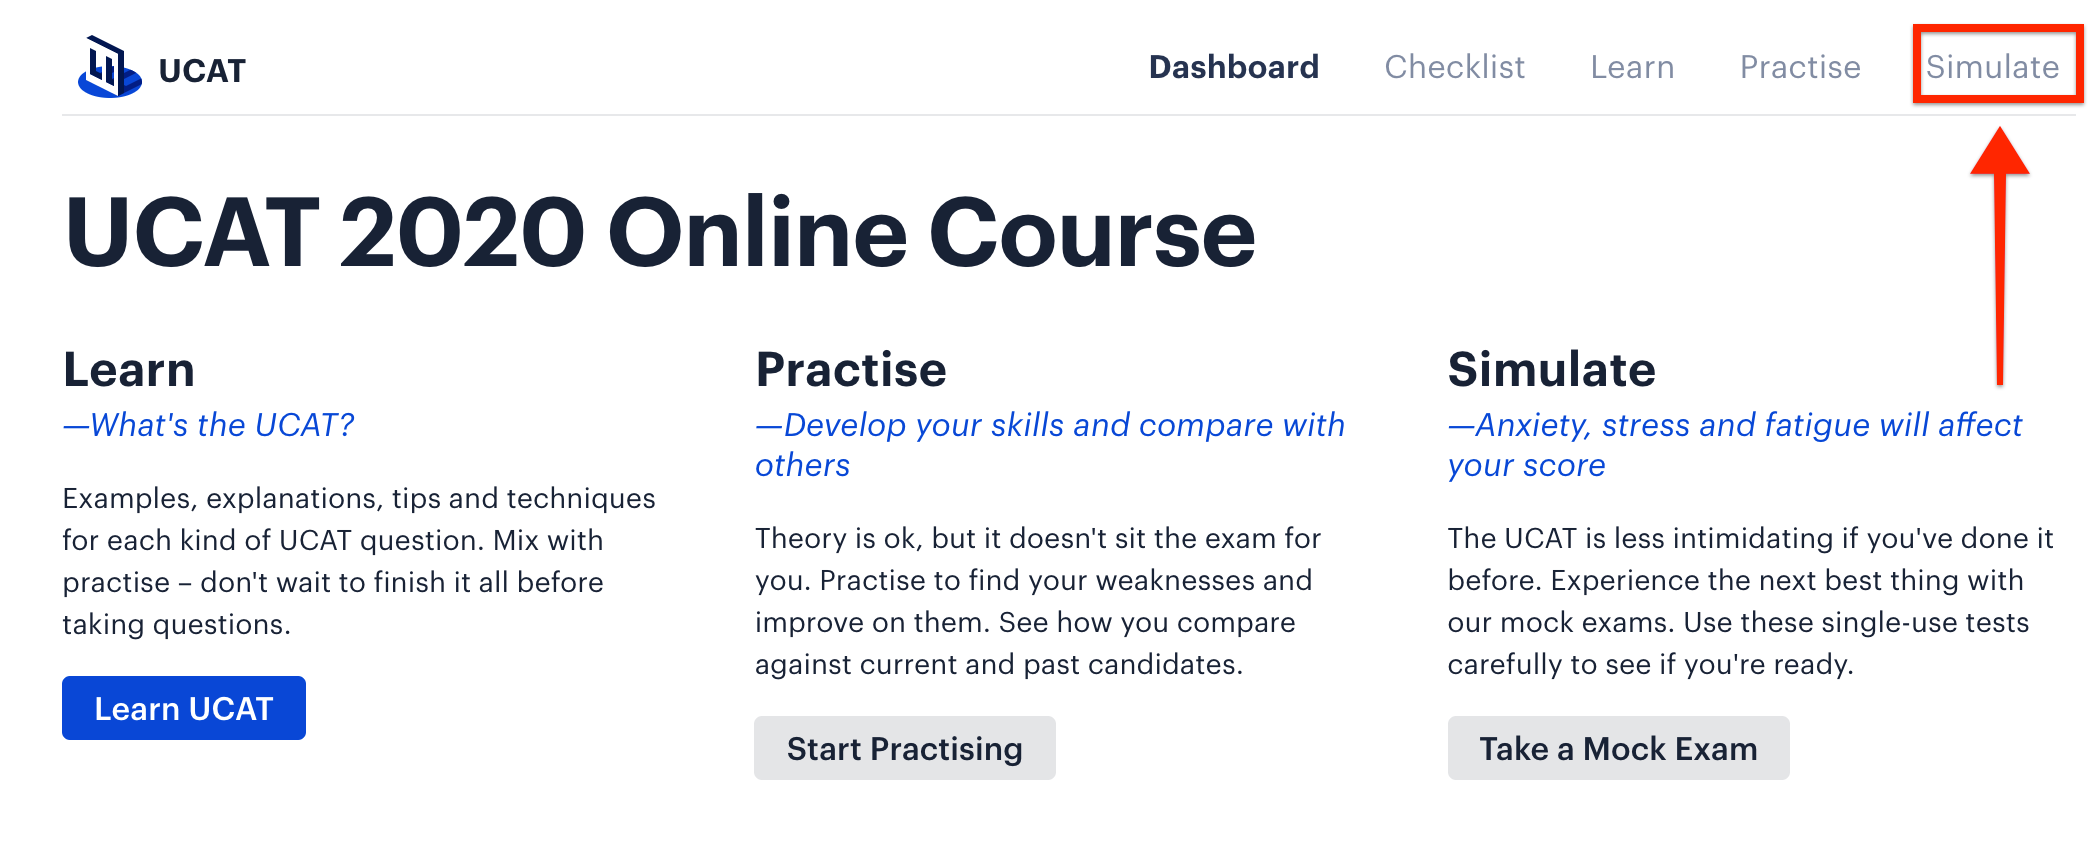 A screenshot of Medify's UCAT 2020 online course, with a red arrow pointing towards the 'Simulate' button.